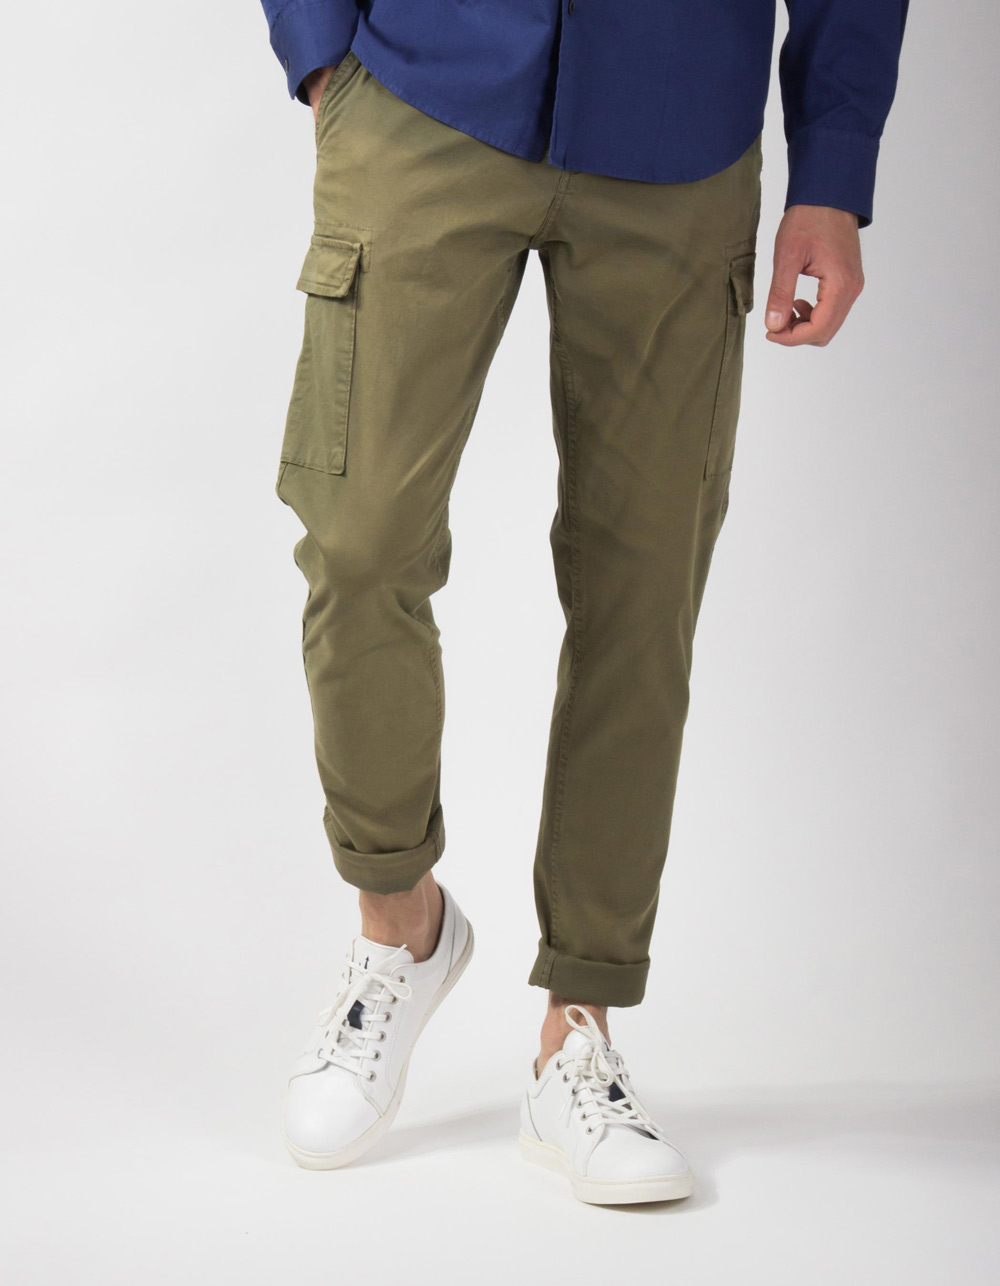 Kaki cargo trousers